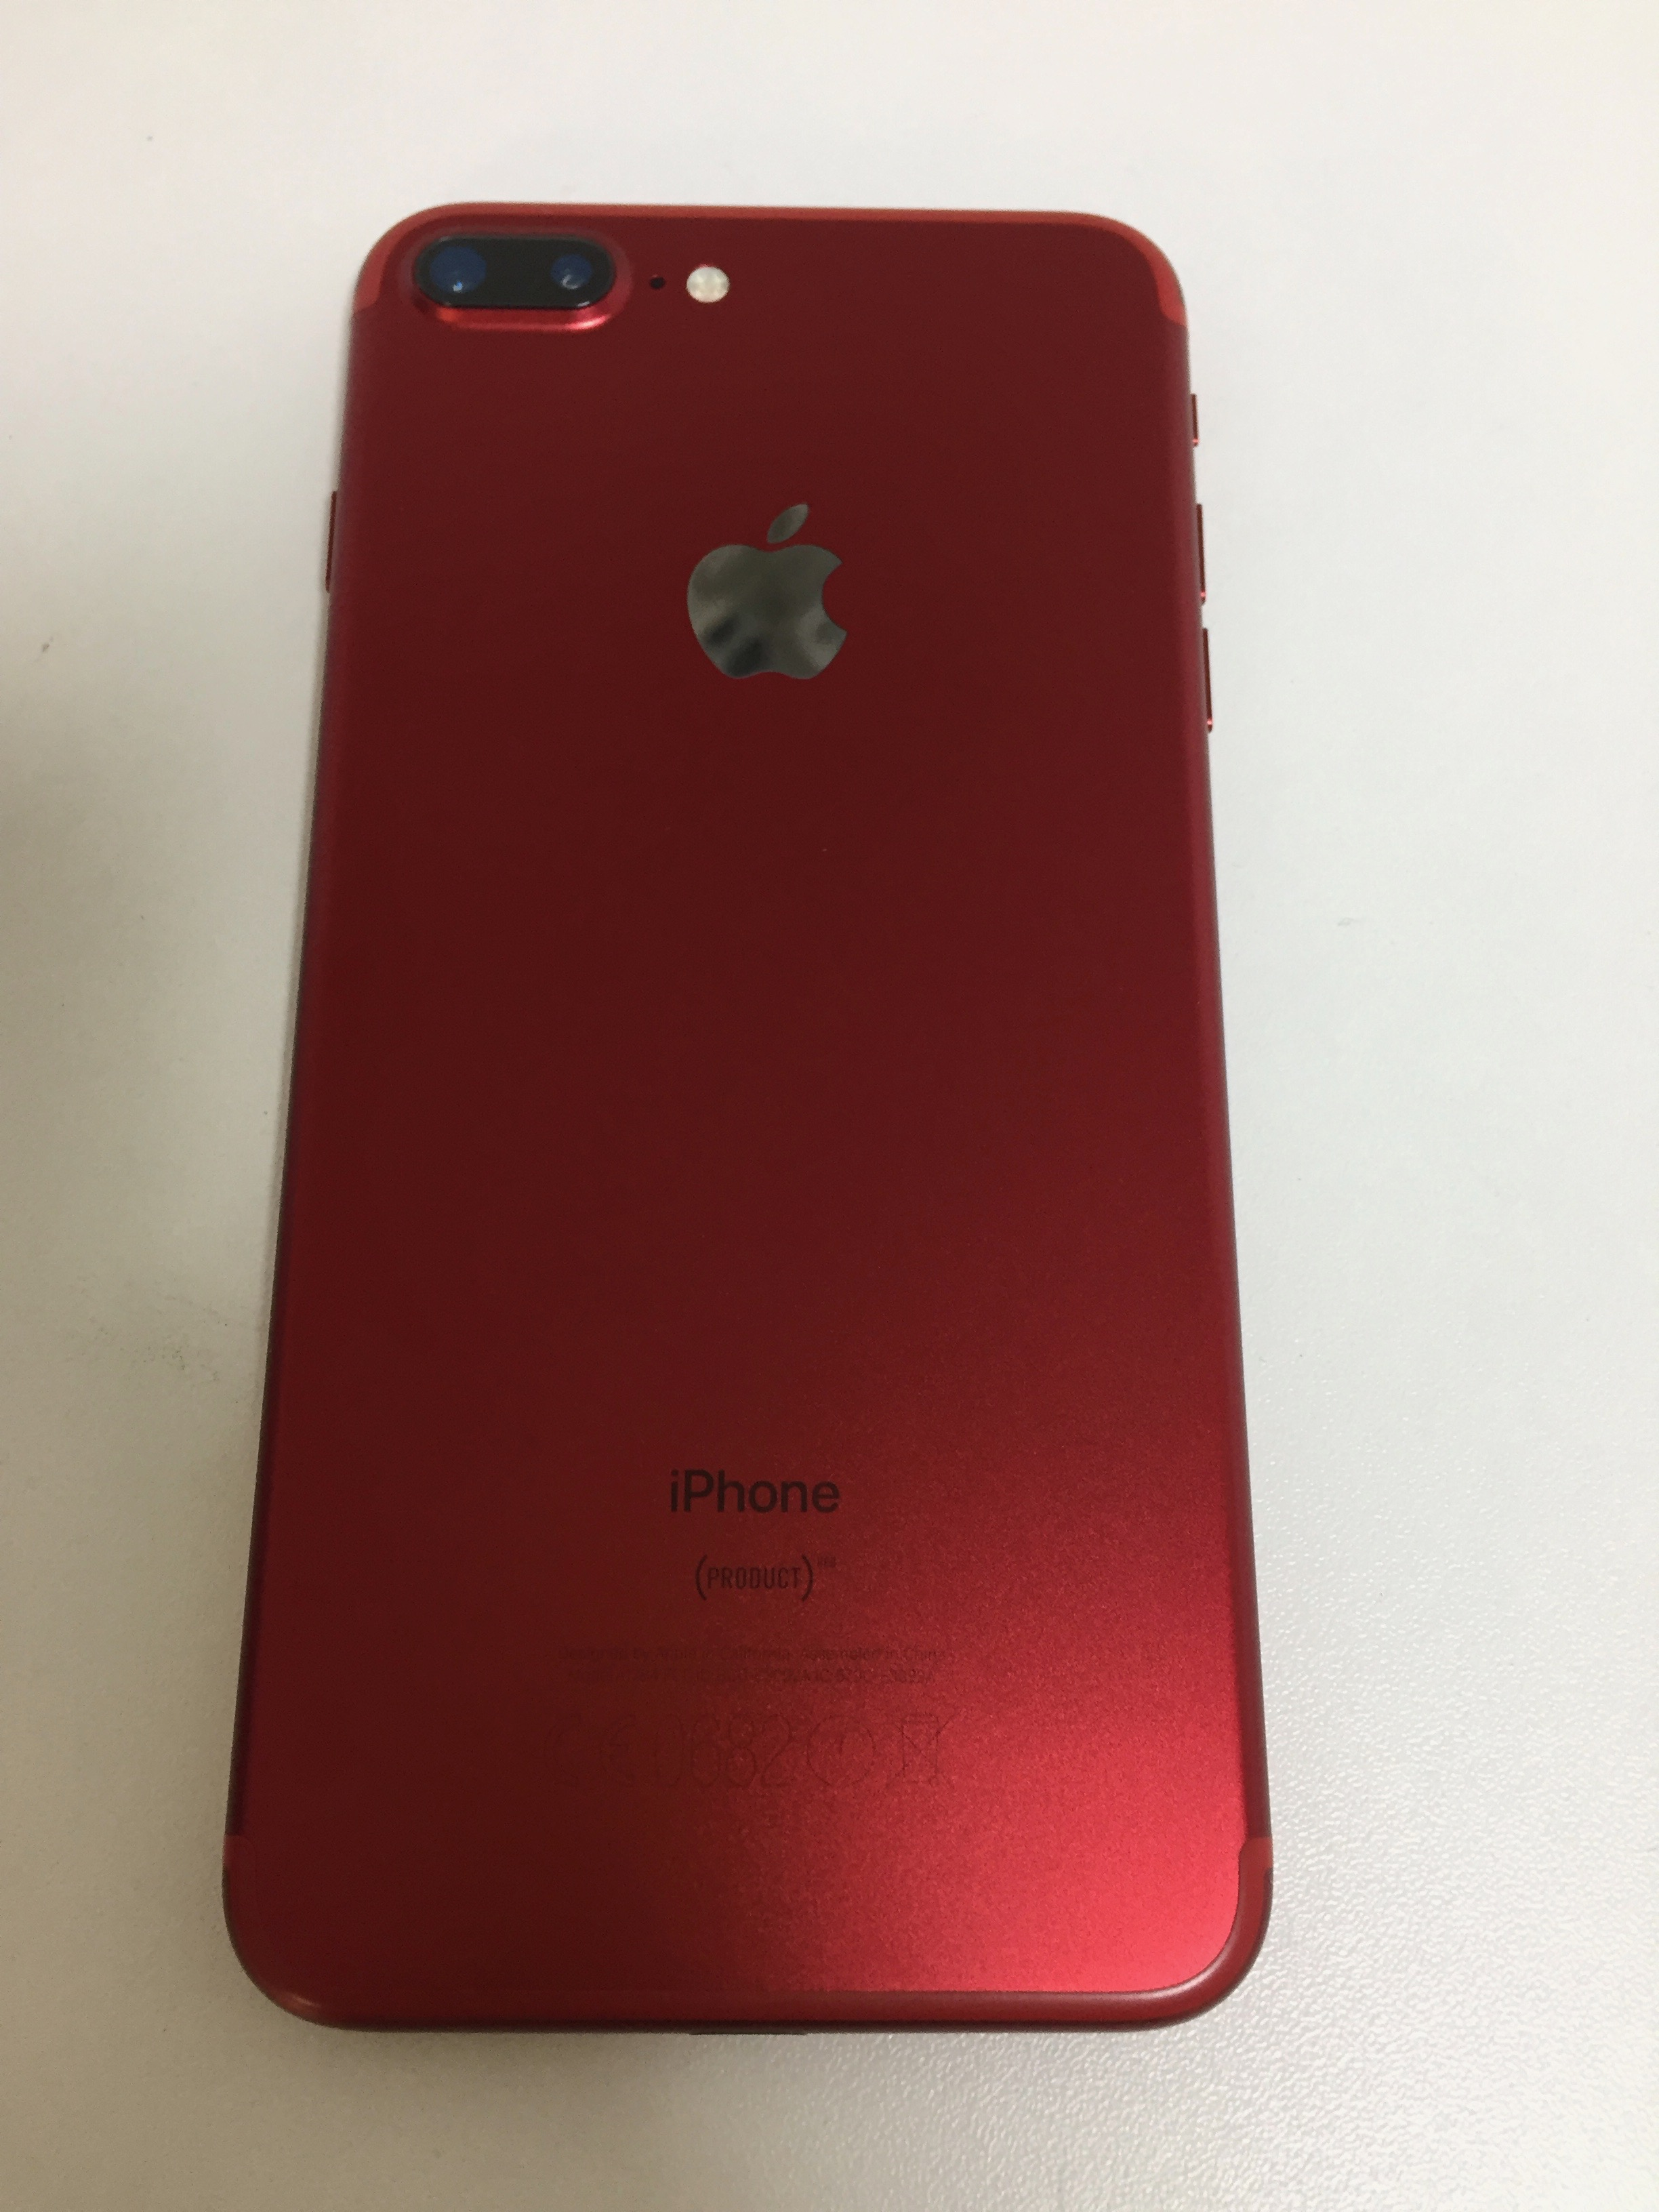 iPhone 7 Plus 128GB, 128 GB, Red, Bild 2